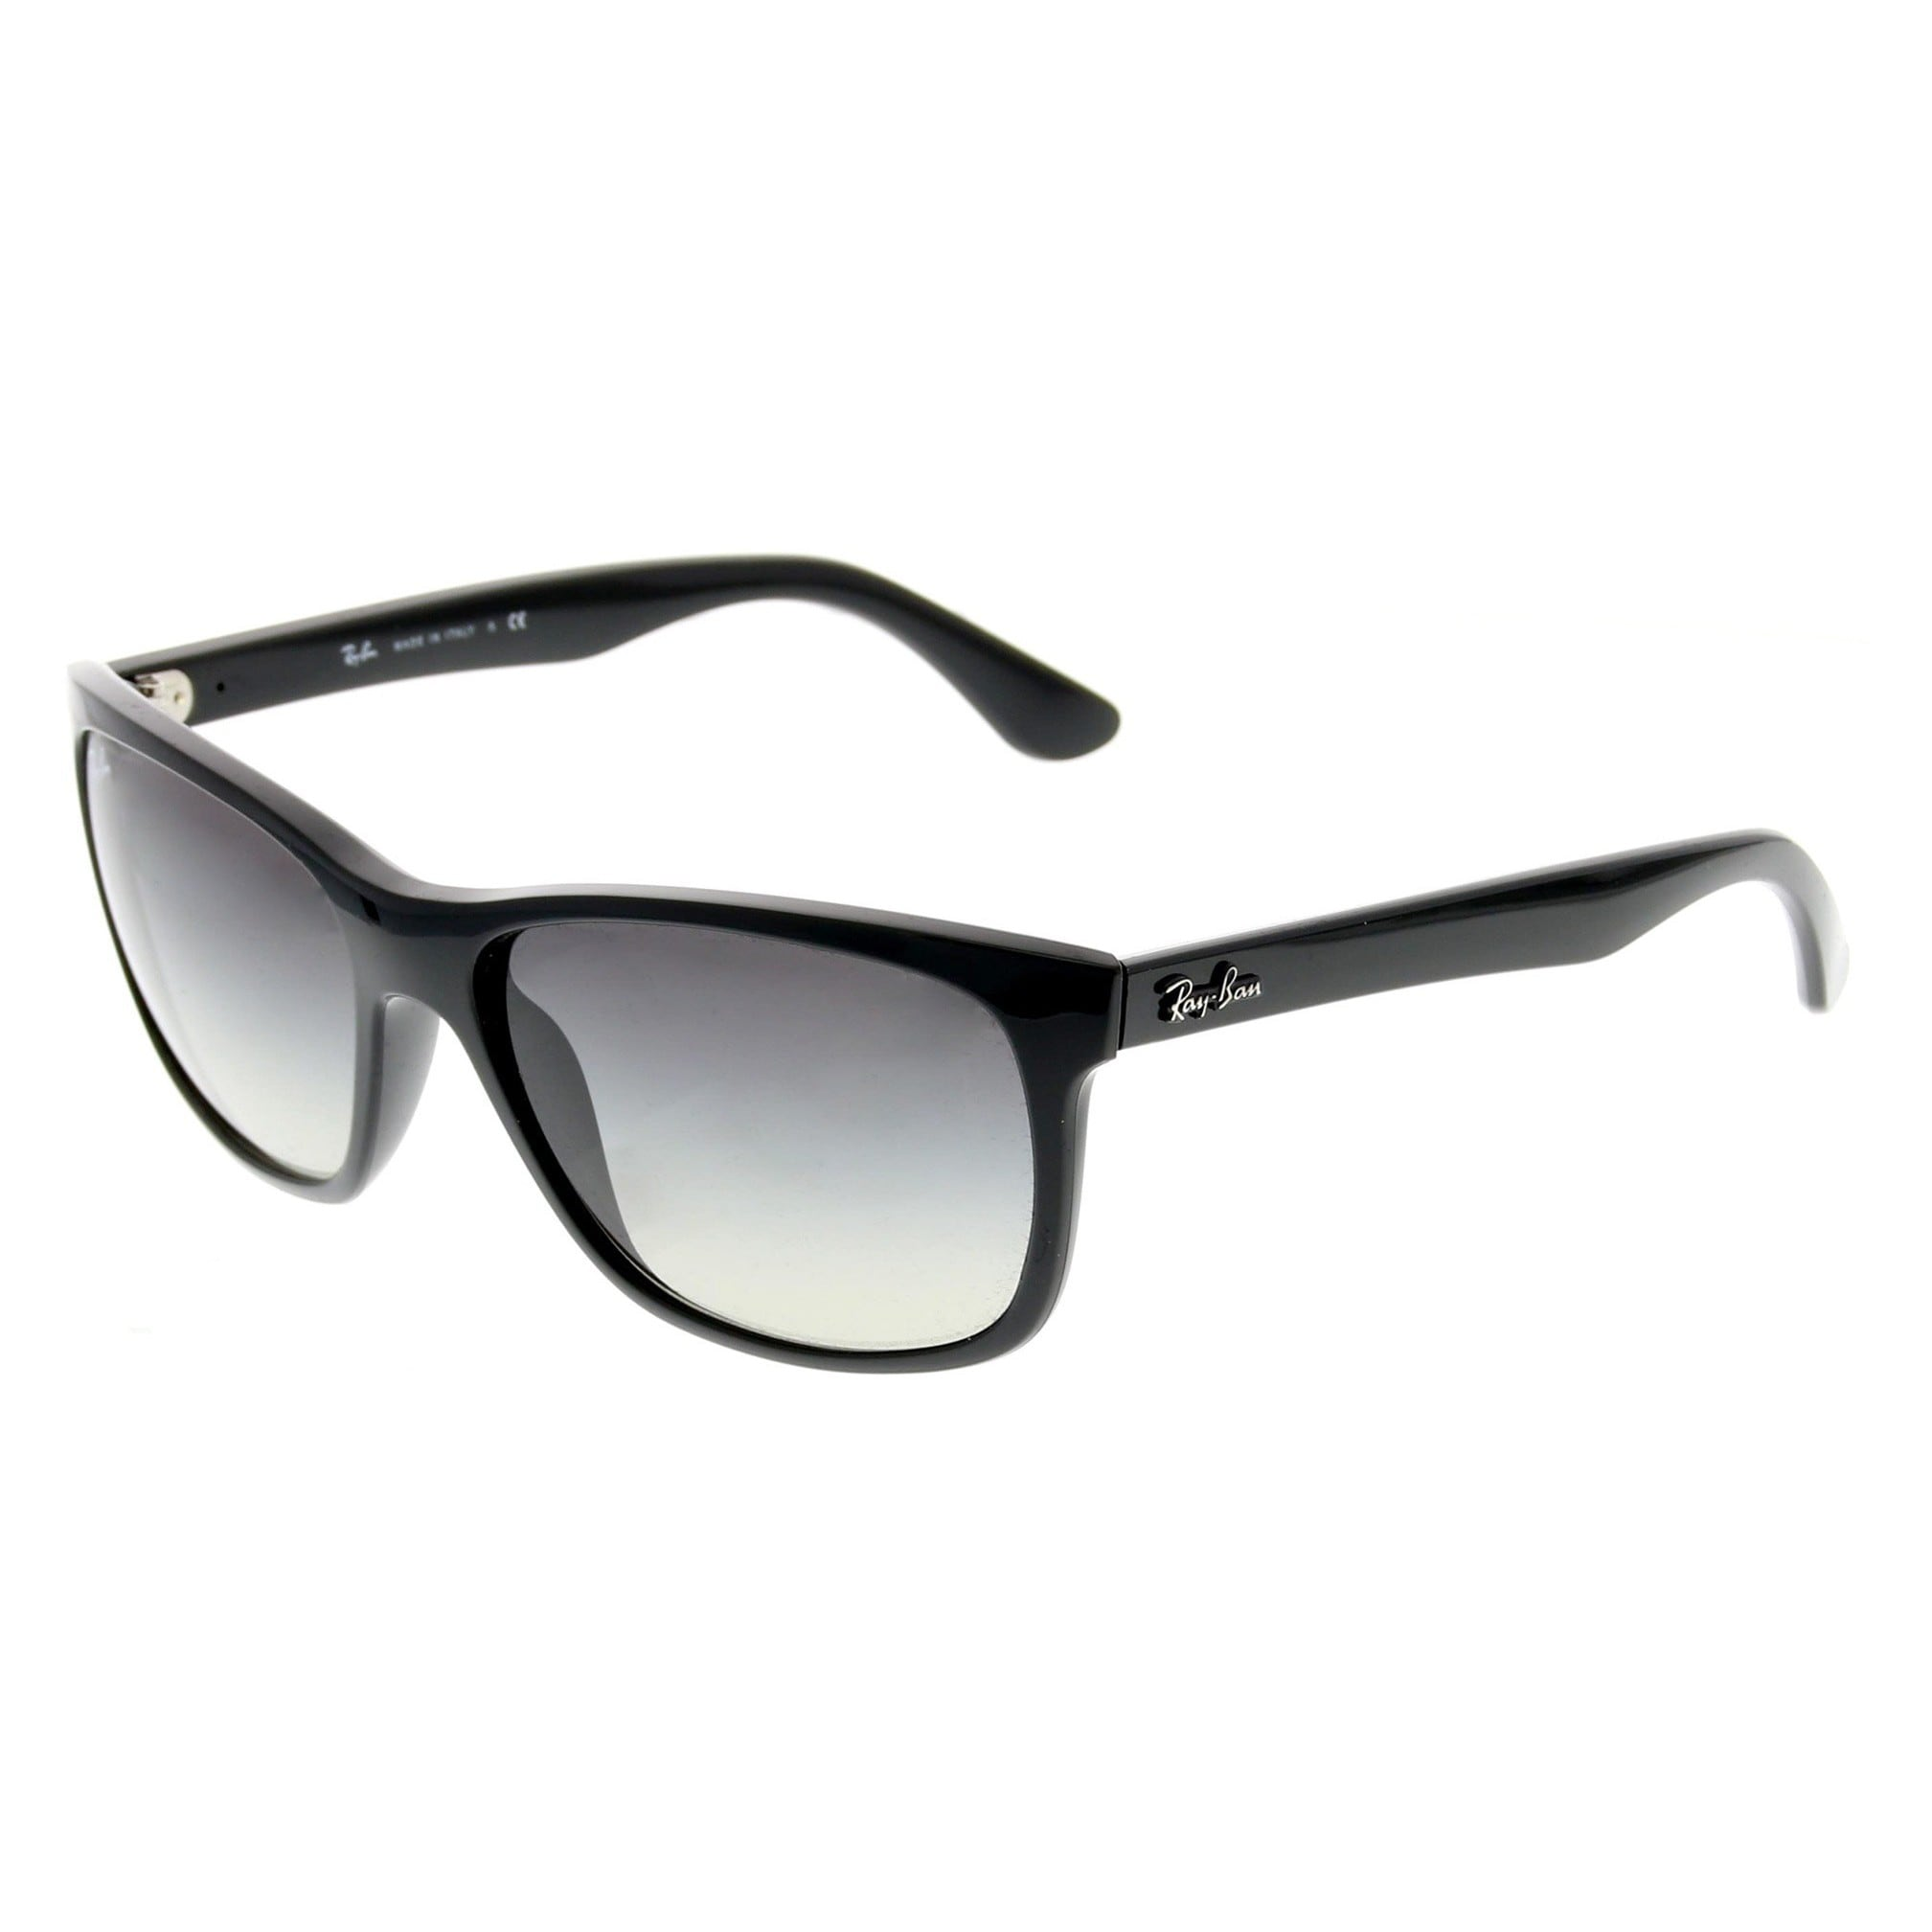 2b7c1bc7ac Shop Ray-Ban RB4181 Gray Gradient Lenses Black Sunglasses - On Sale - Free  Shipping Today - Overstock.com - 10302913